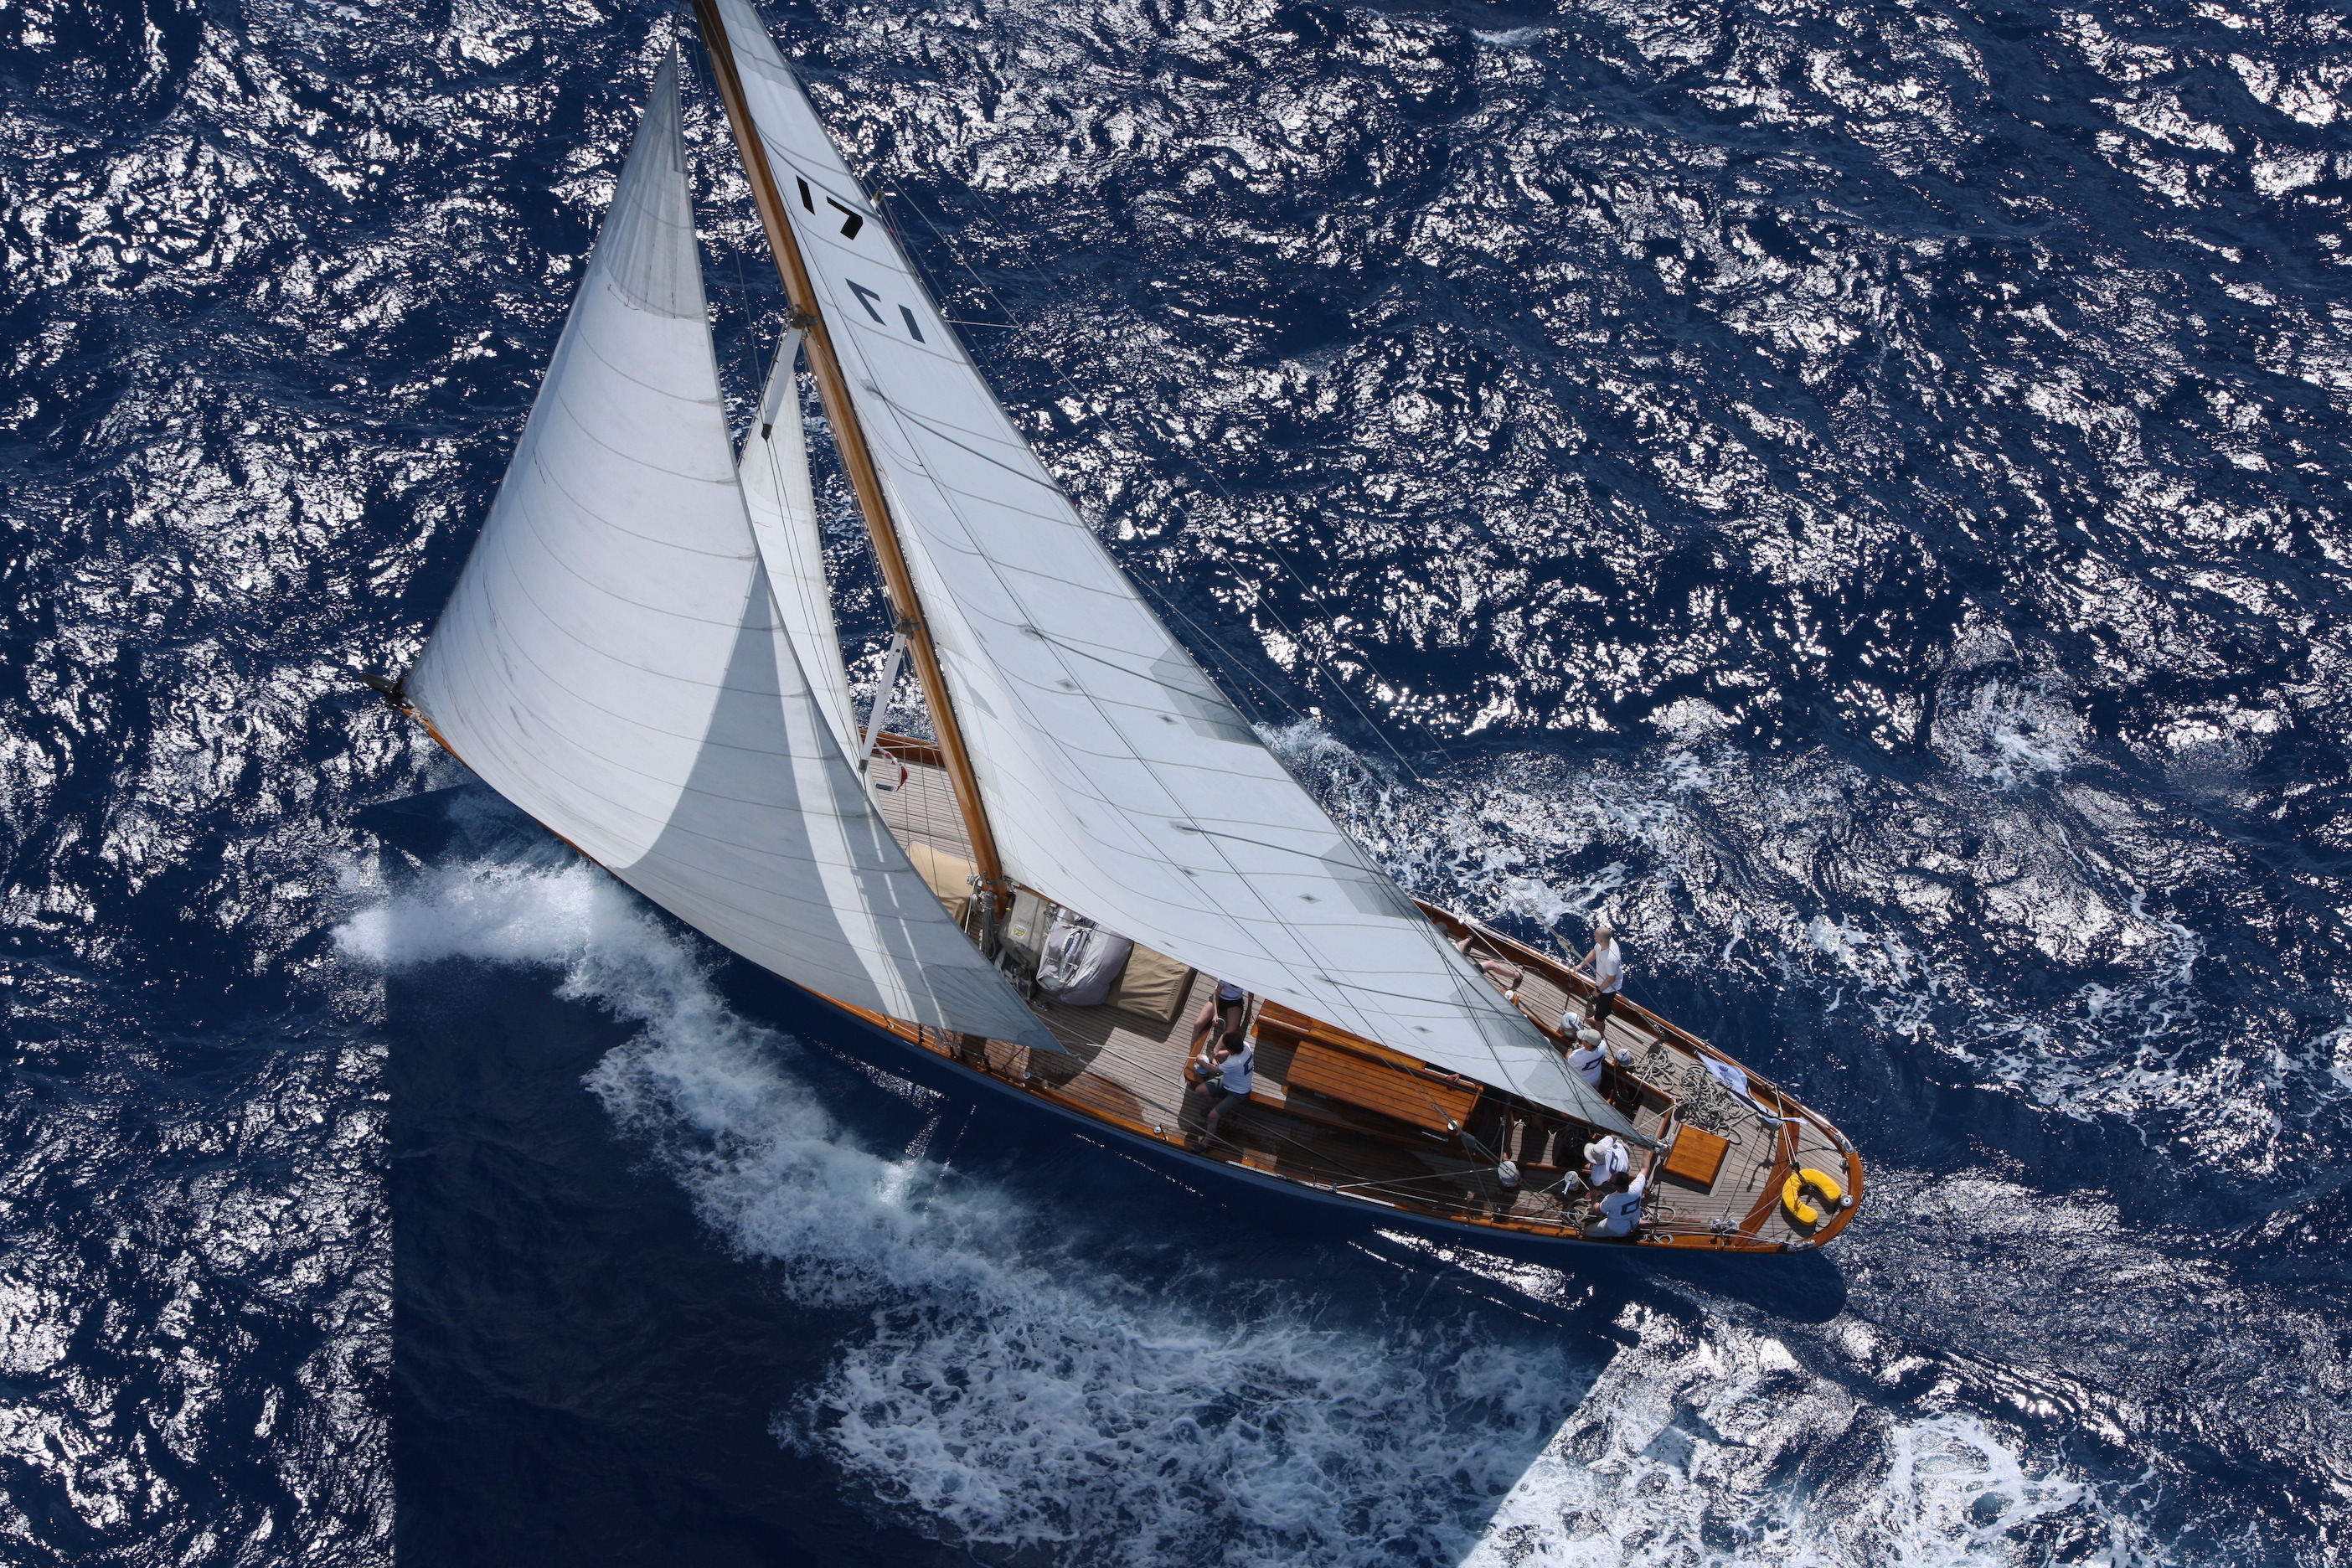 Adela starting the RORC Caribbean 600 off the Pillars of Hercules, Antigua © RORC/Tim Wright/photoaction.com